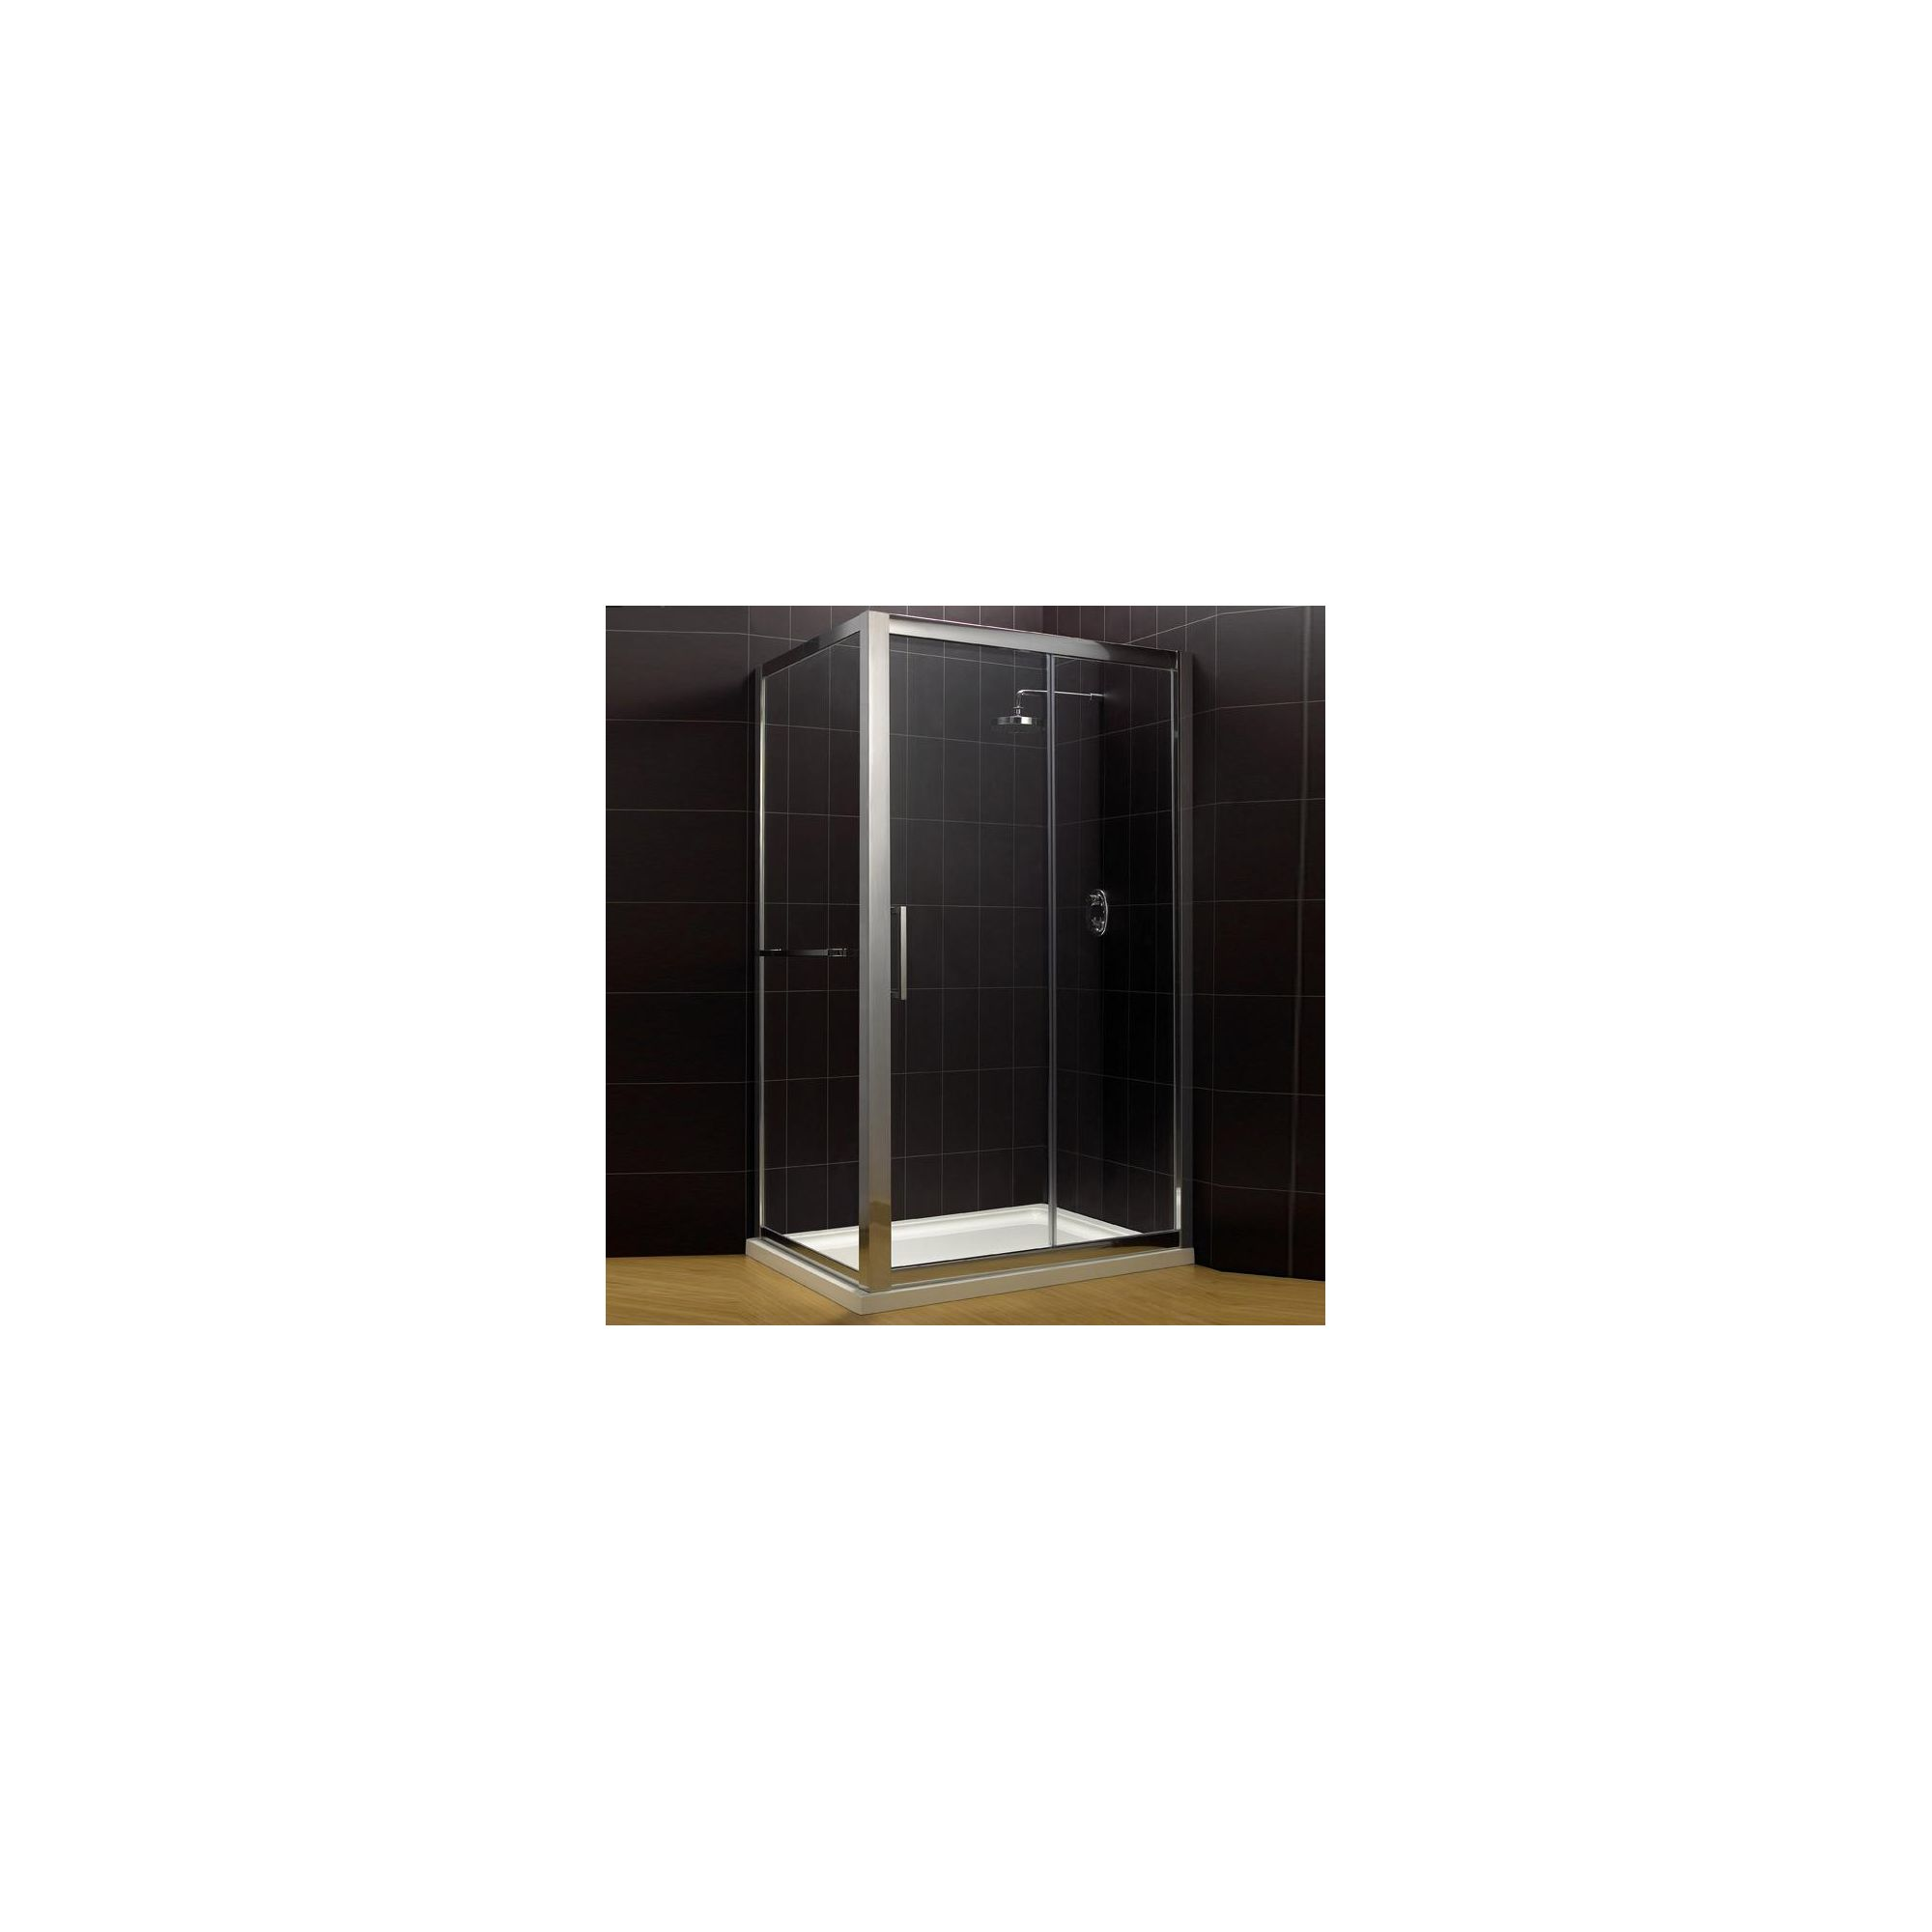 Duchy Supreme Silver Sliding Door Shower Enclosure with Towel Rail, 1700mm x 800mm, Standard Tray, 8mm Glass at Tesco Direct